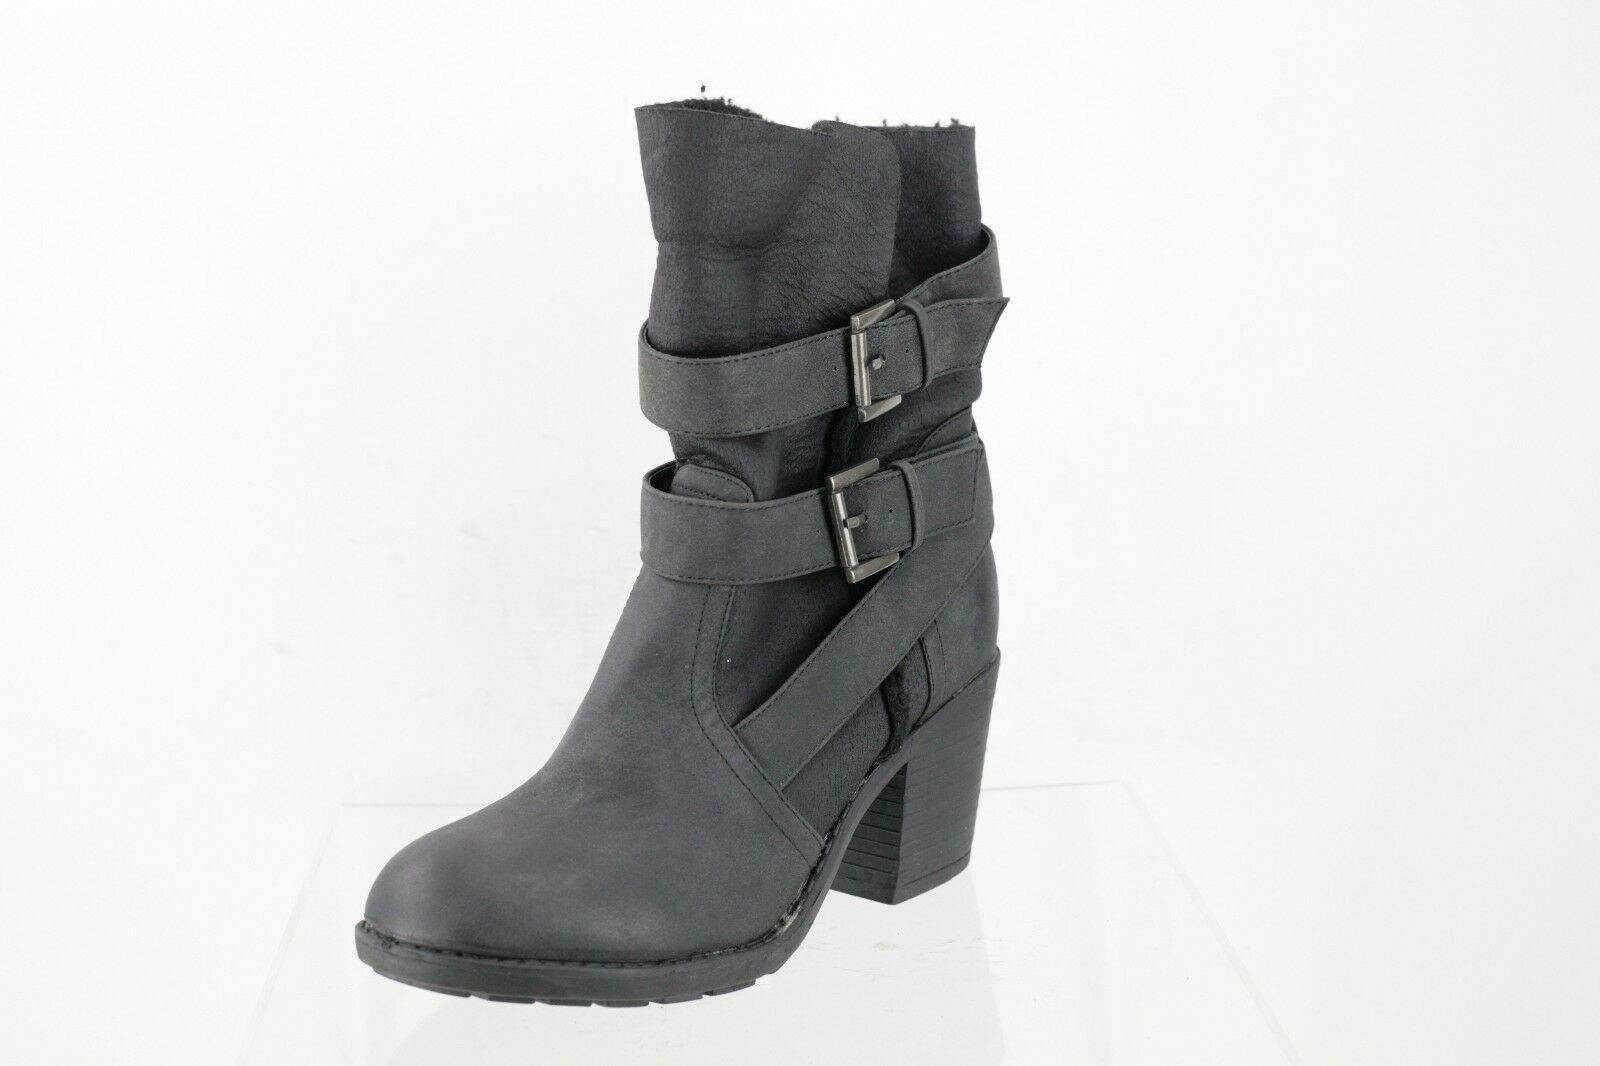 Report Yurick Dark Gray Leather Harnessed Ankle Boots Women's Shoes Sz 8.5 M NEW